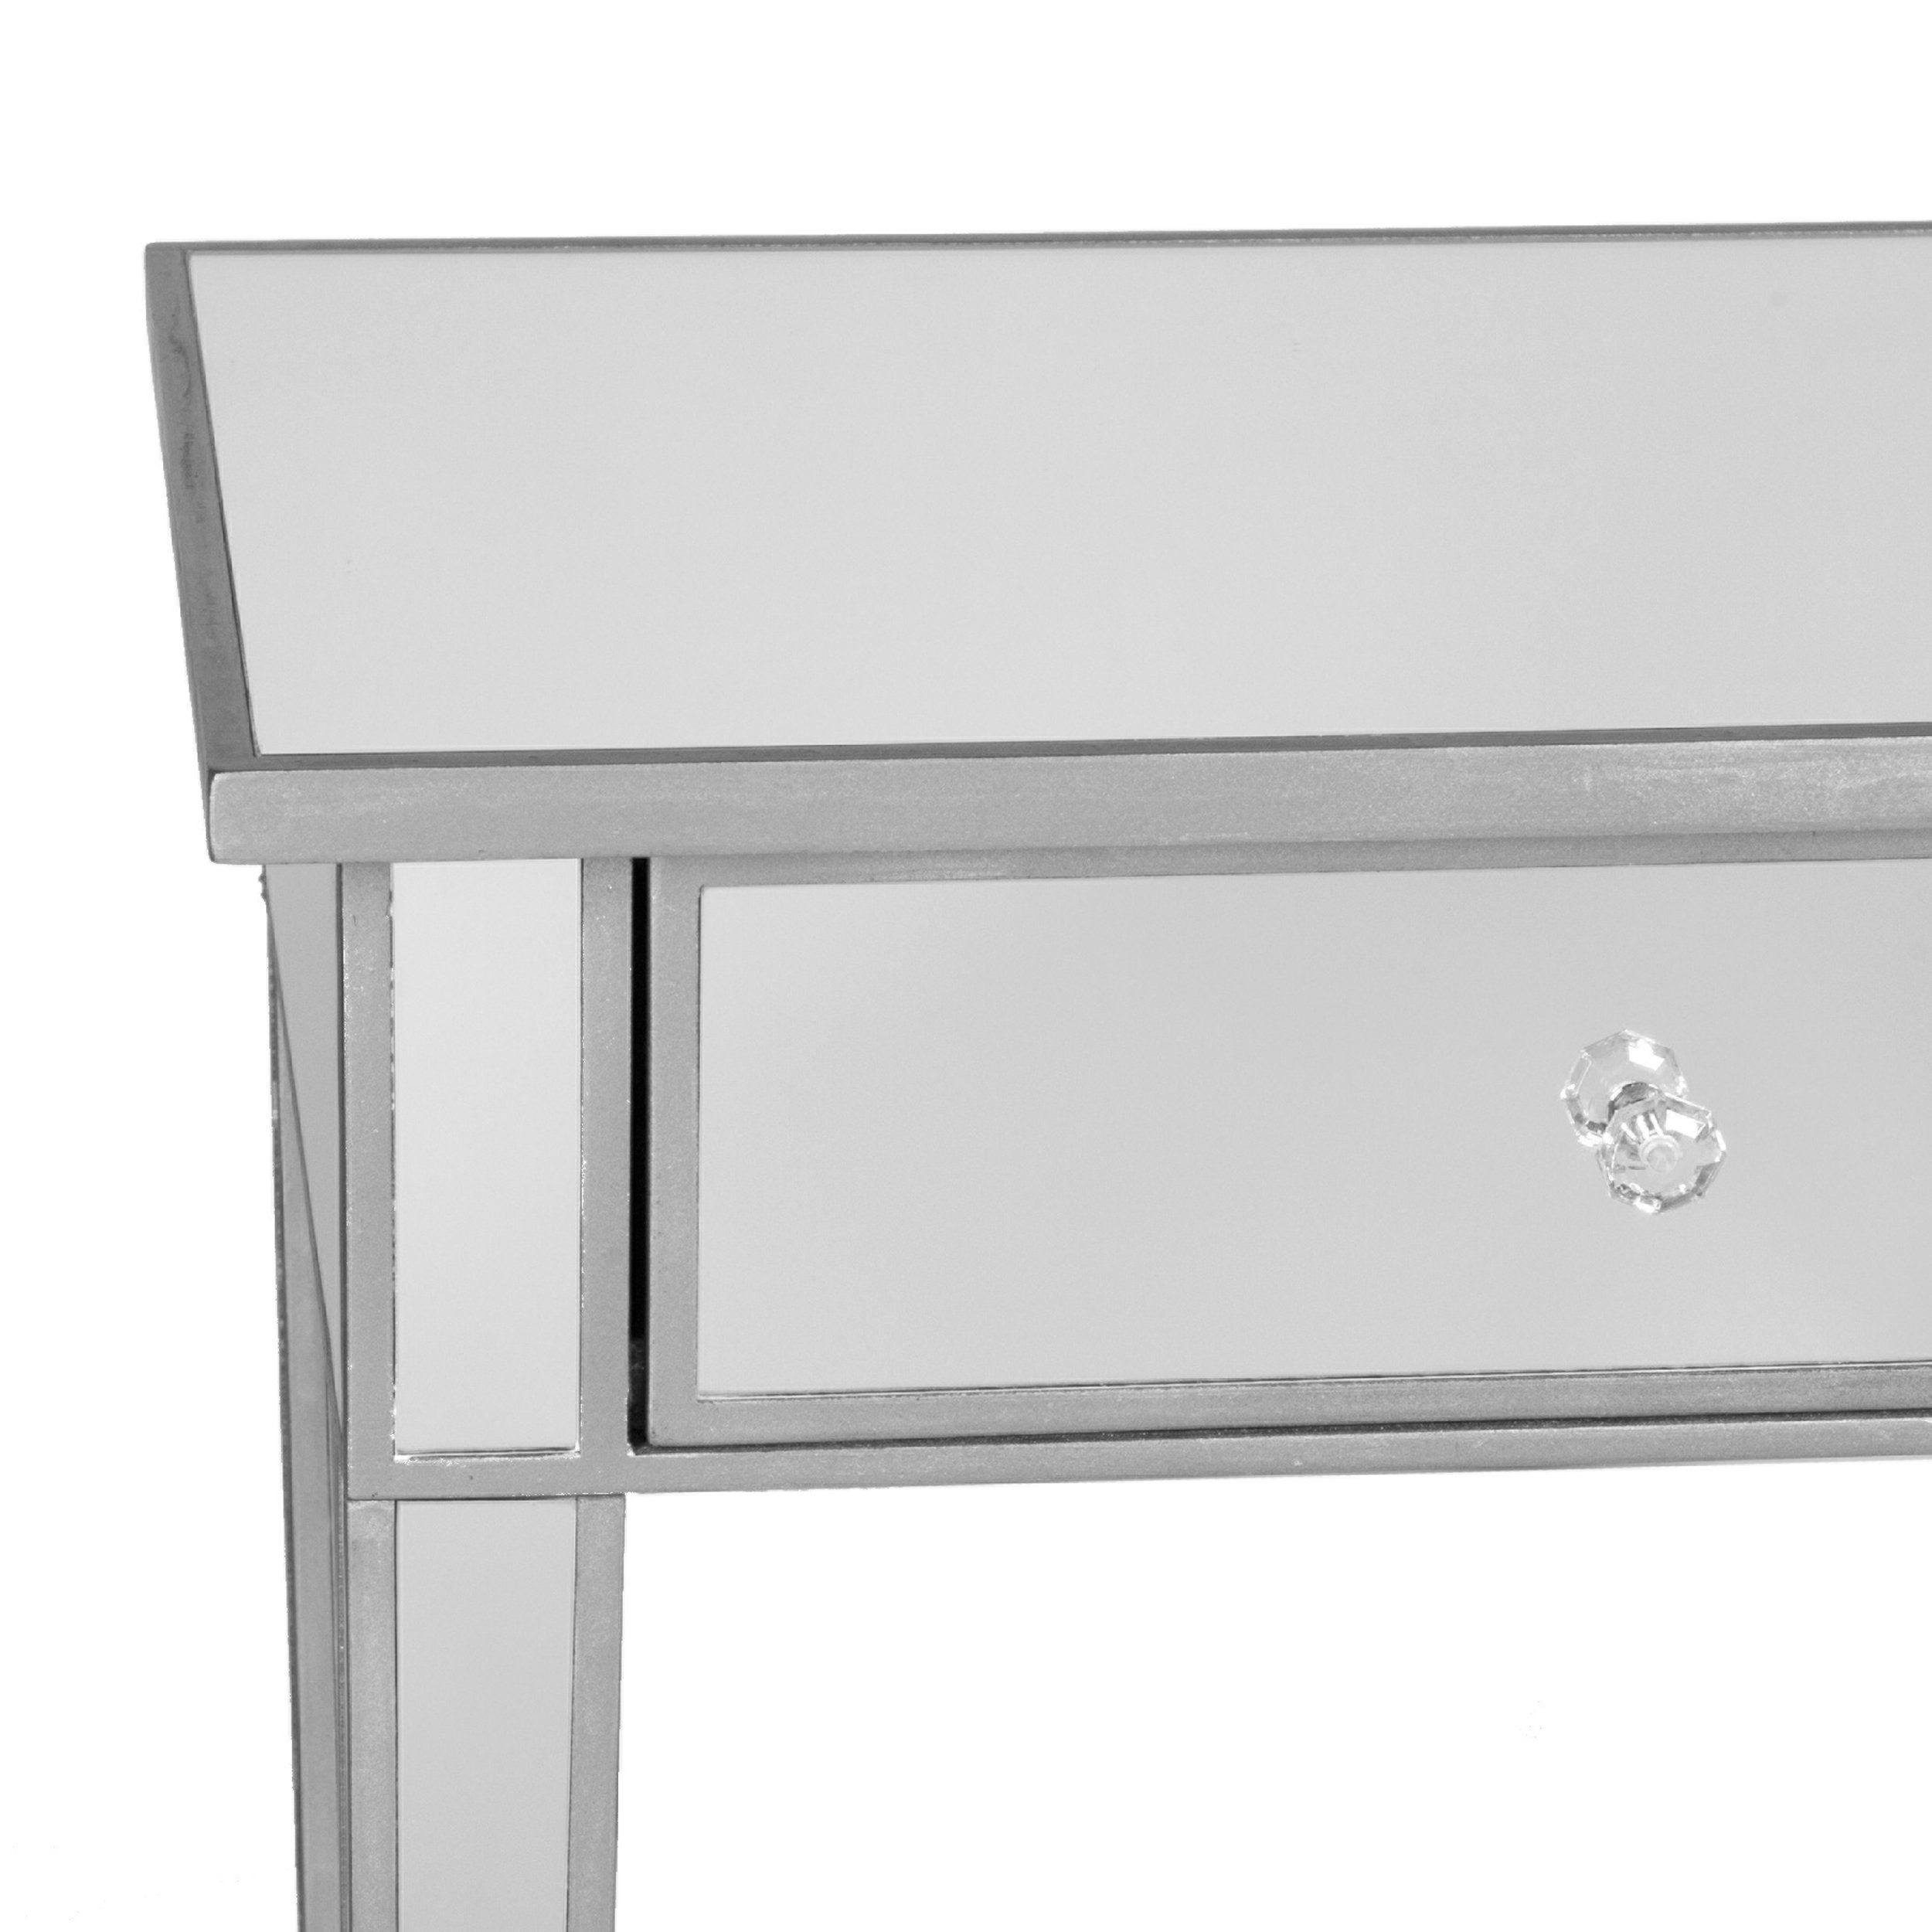 southern enterprises mirage mirrored drawer media console table accent matte silver finish with faux crystal knobs drink bunnings garden furniture uma outdoor distressed blue side